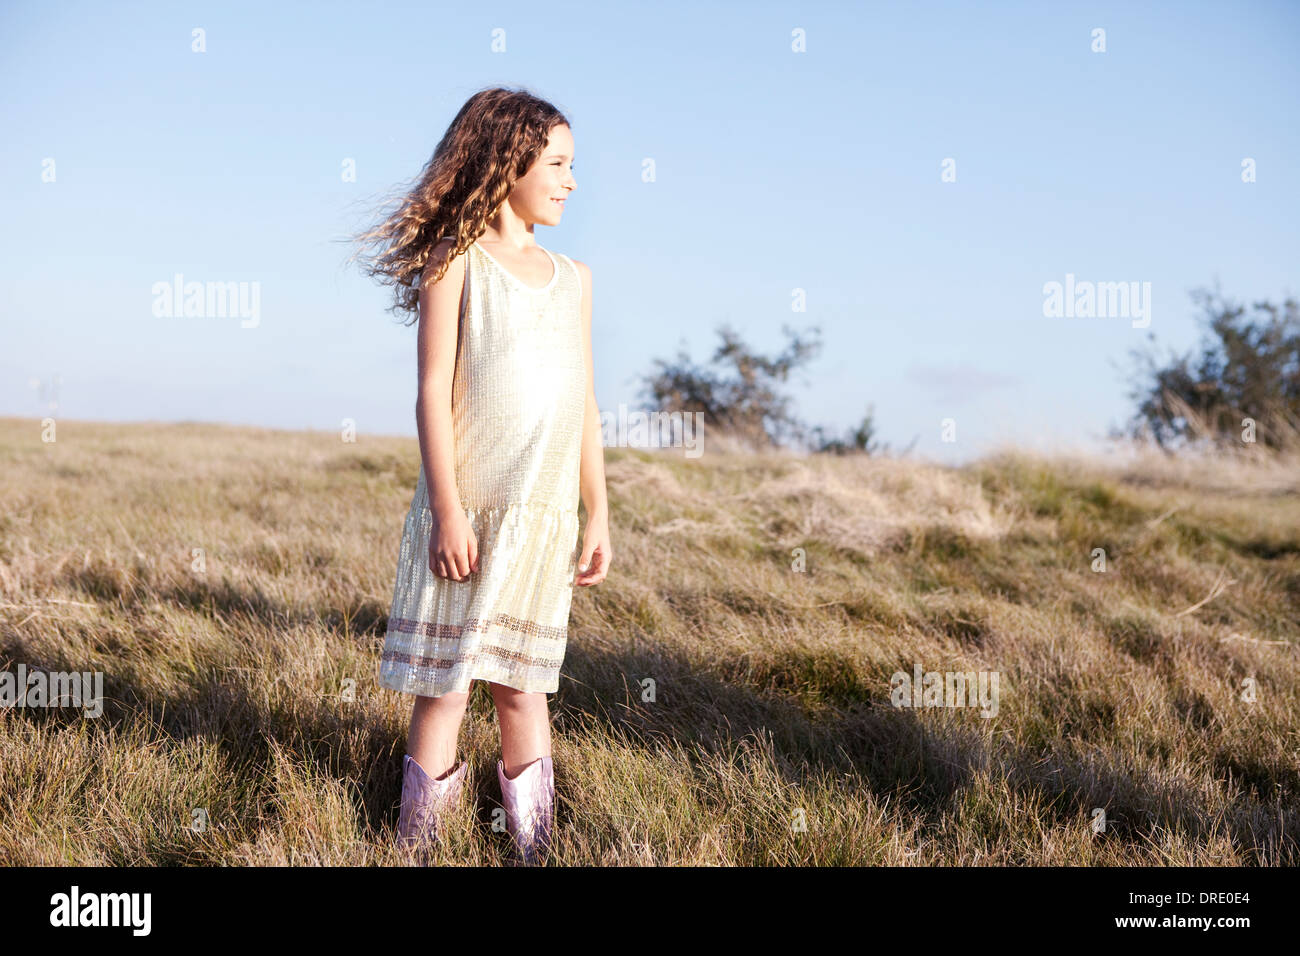 Young girl in dress on hillside - Stock Image